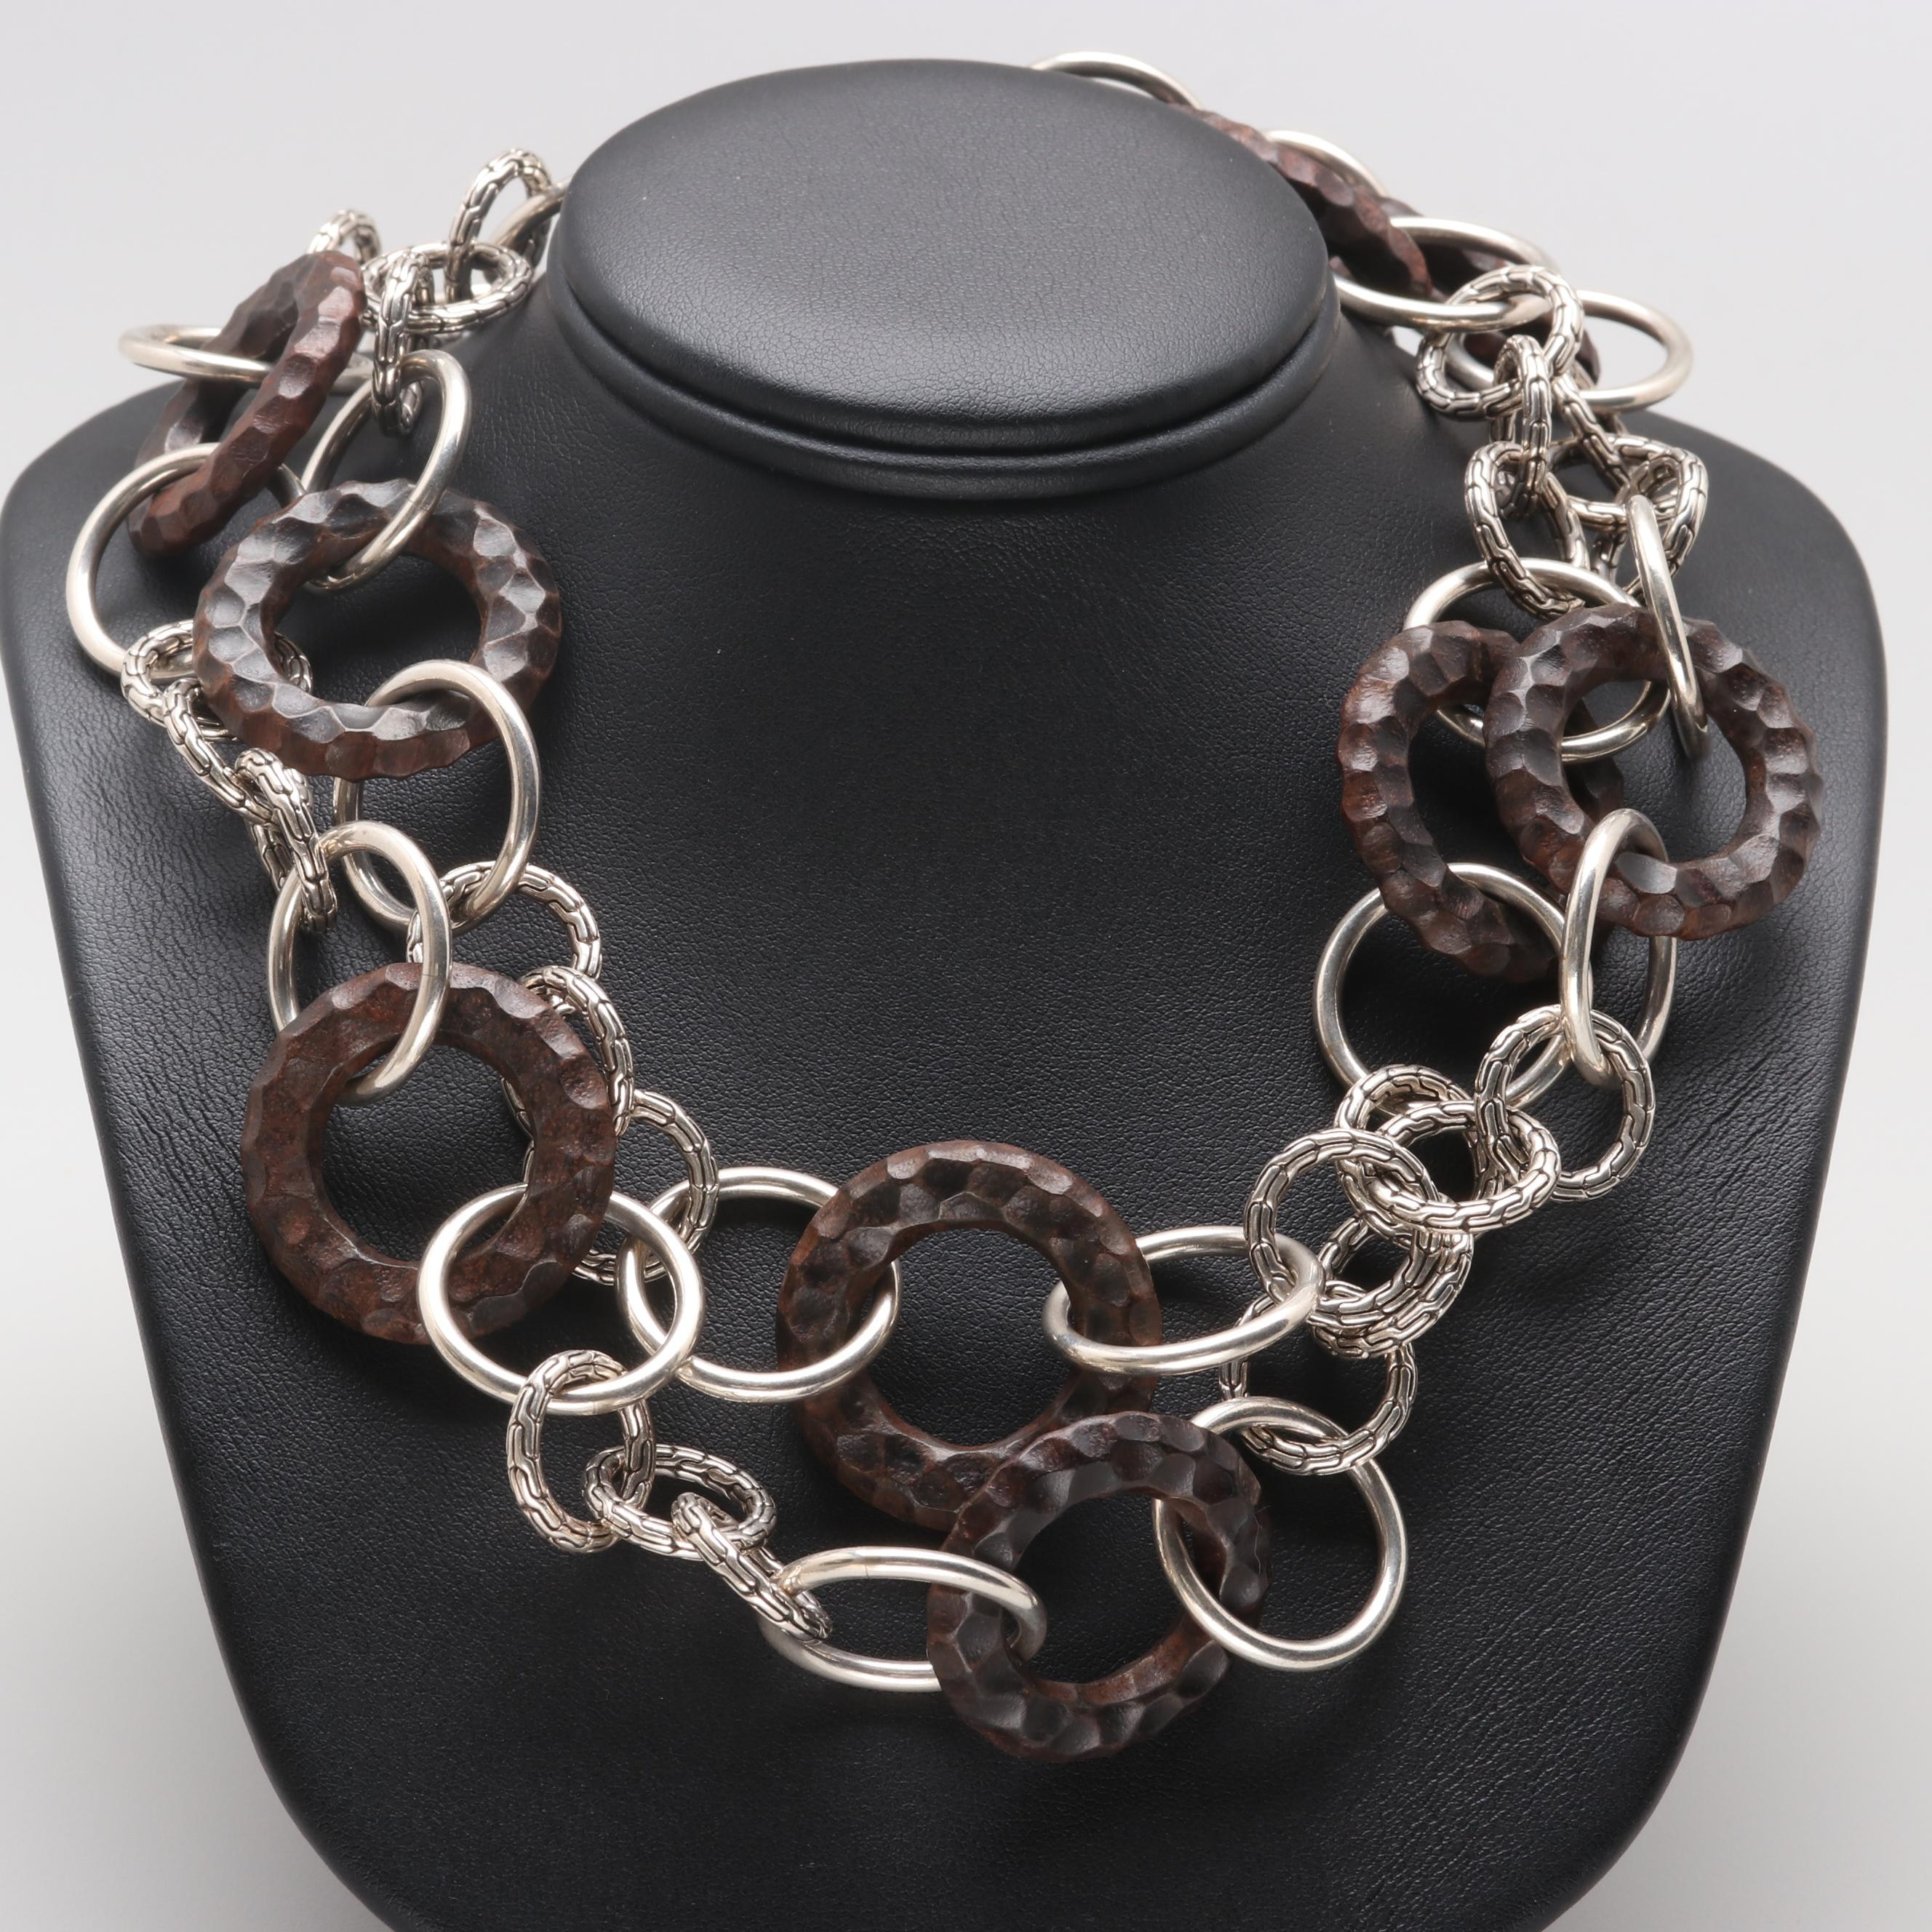 John Hardy Sterling Silver Textured Linked and Rose Wood Linked Necklace